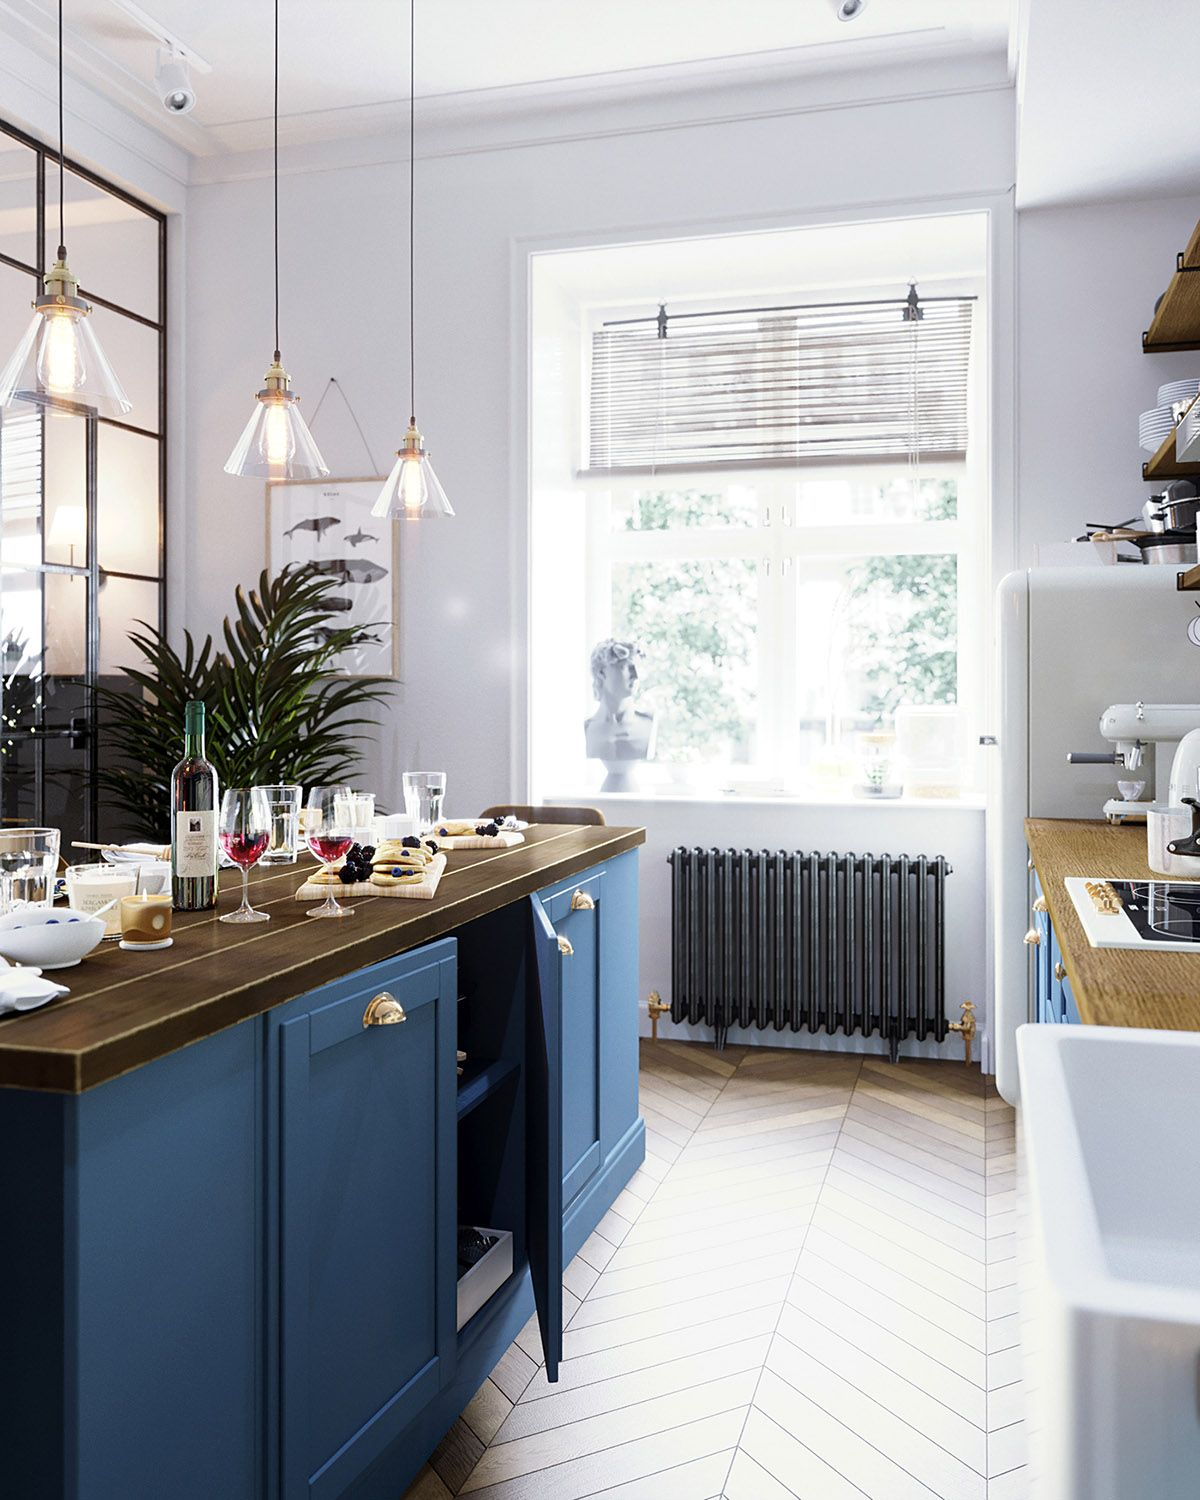 Earthy Eclectic Scandinavian Style Interior In 2020 Scandinavian Style Interior Cheap Home Decor Kitchen Style